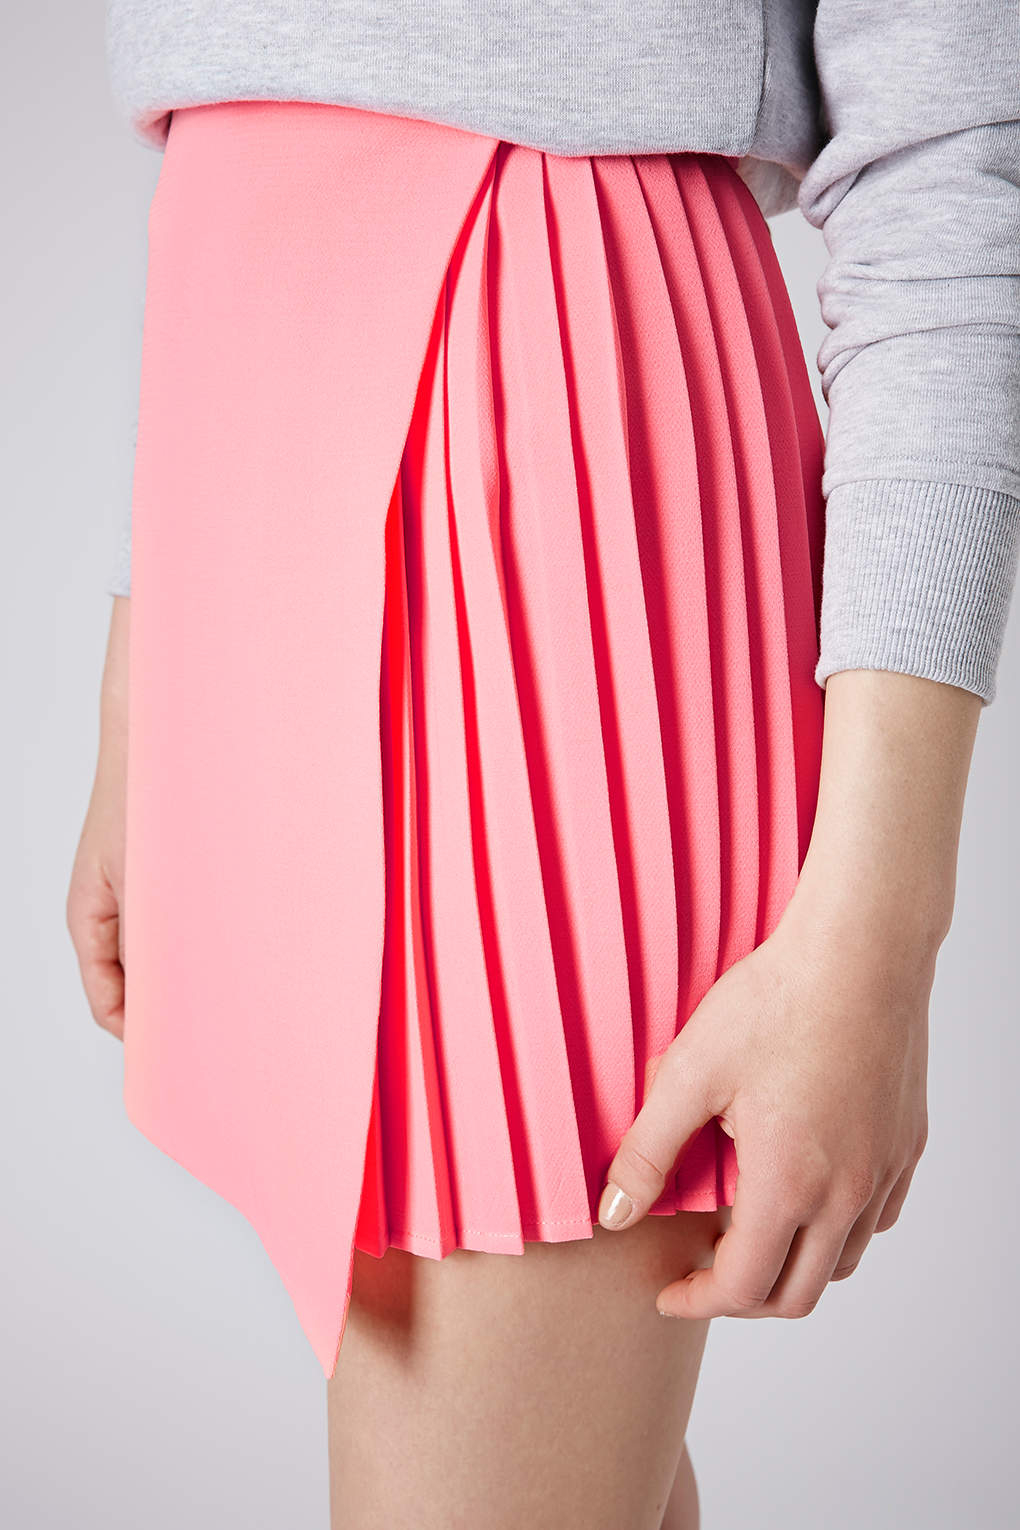 00ad1c8e48 Topshop pink asymmetric pleat wrap skirt product 1 19887913 2 561147139  normal small